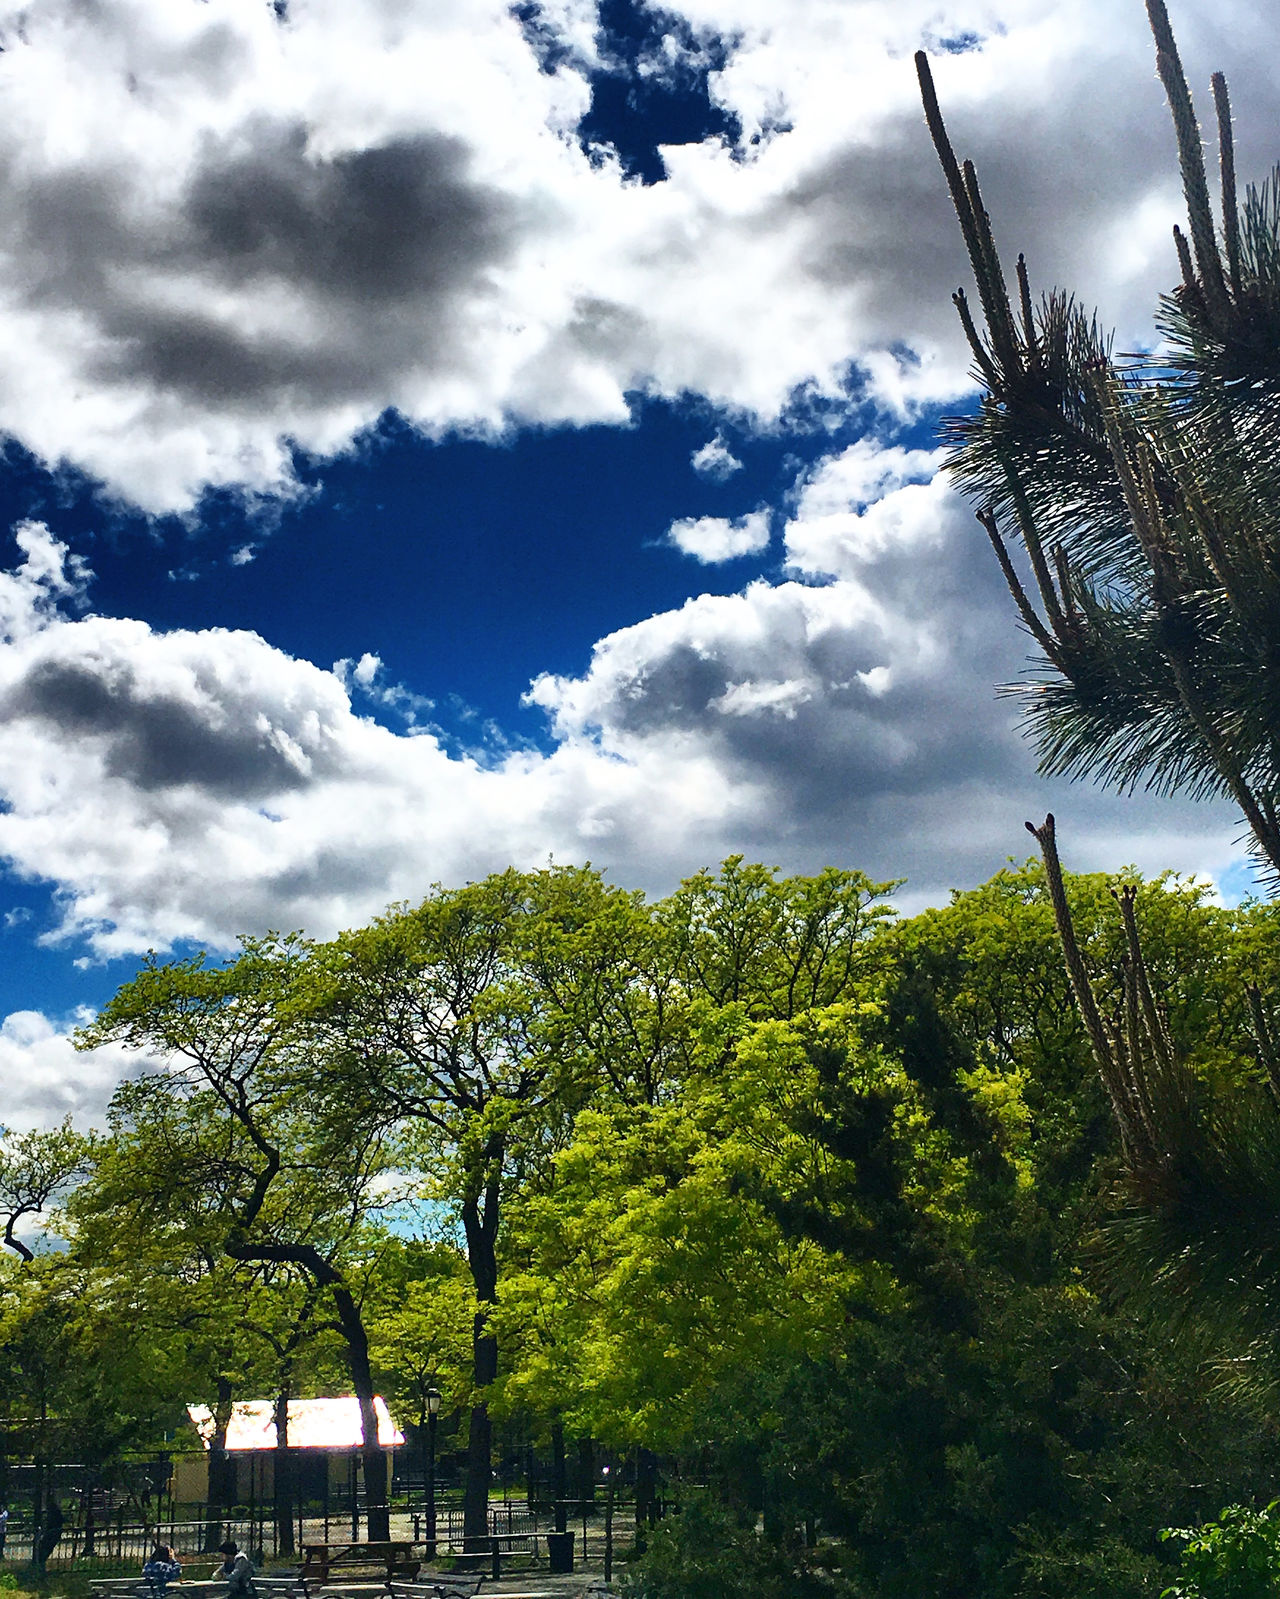 Sky and Ground Beauty In Nature Cloud - Sky Day Green Color Growth Low Angle View Nature No People Outdoors Sky Tree